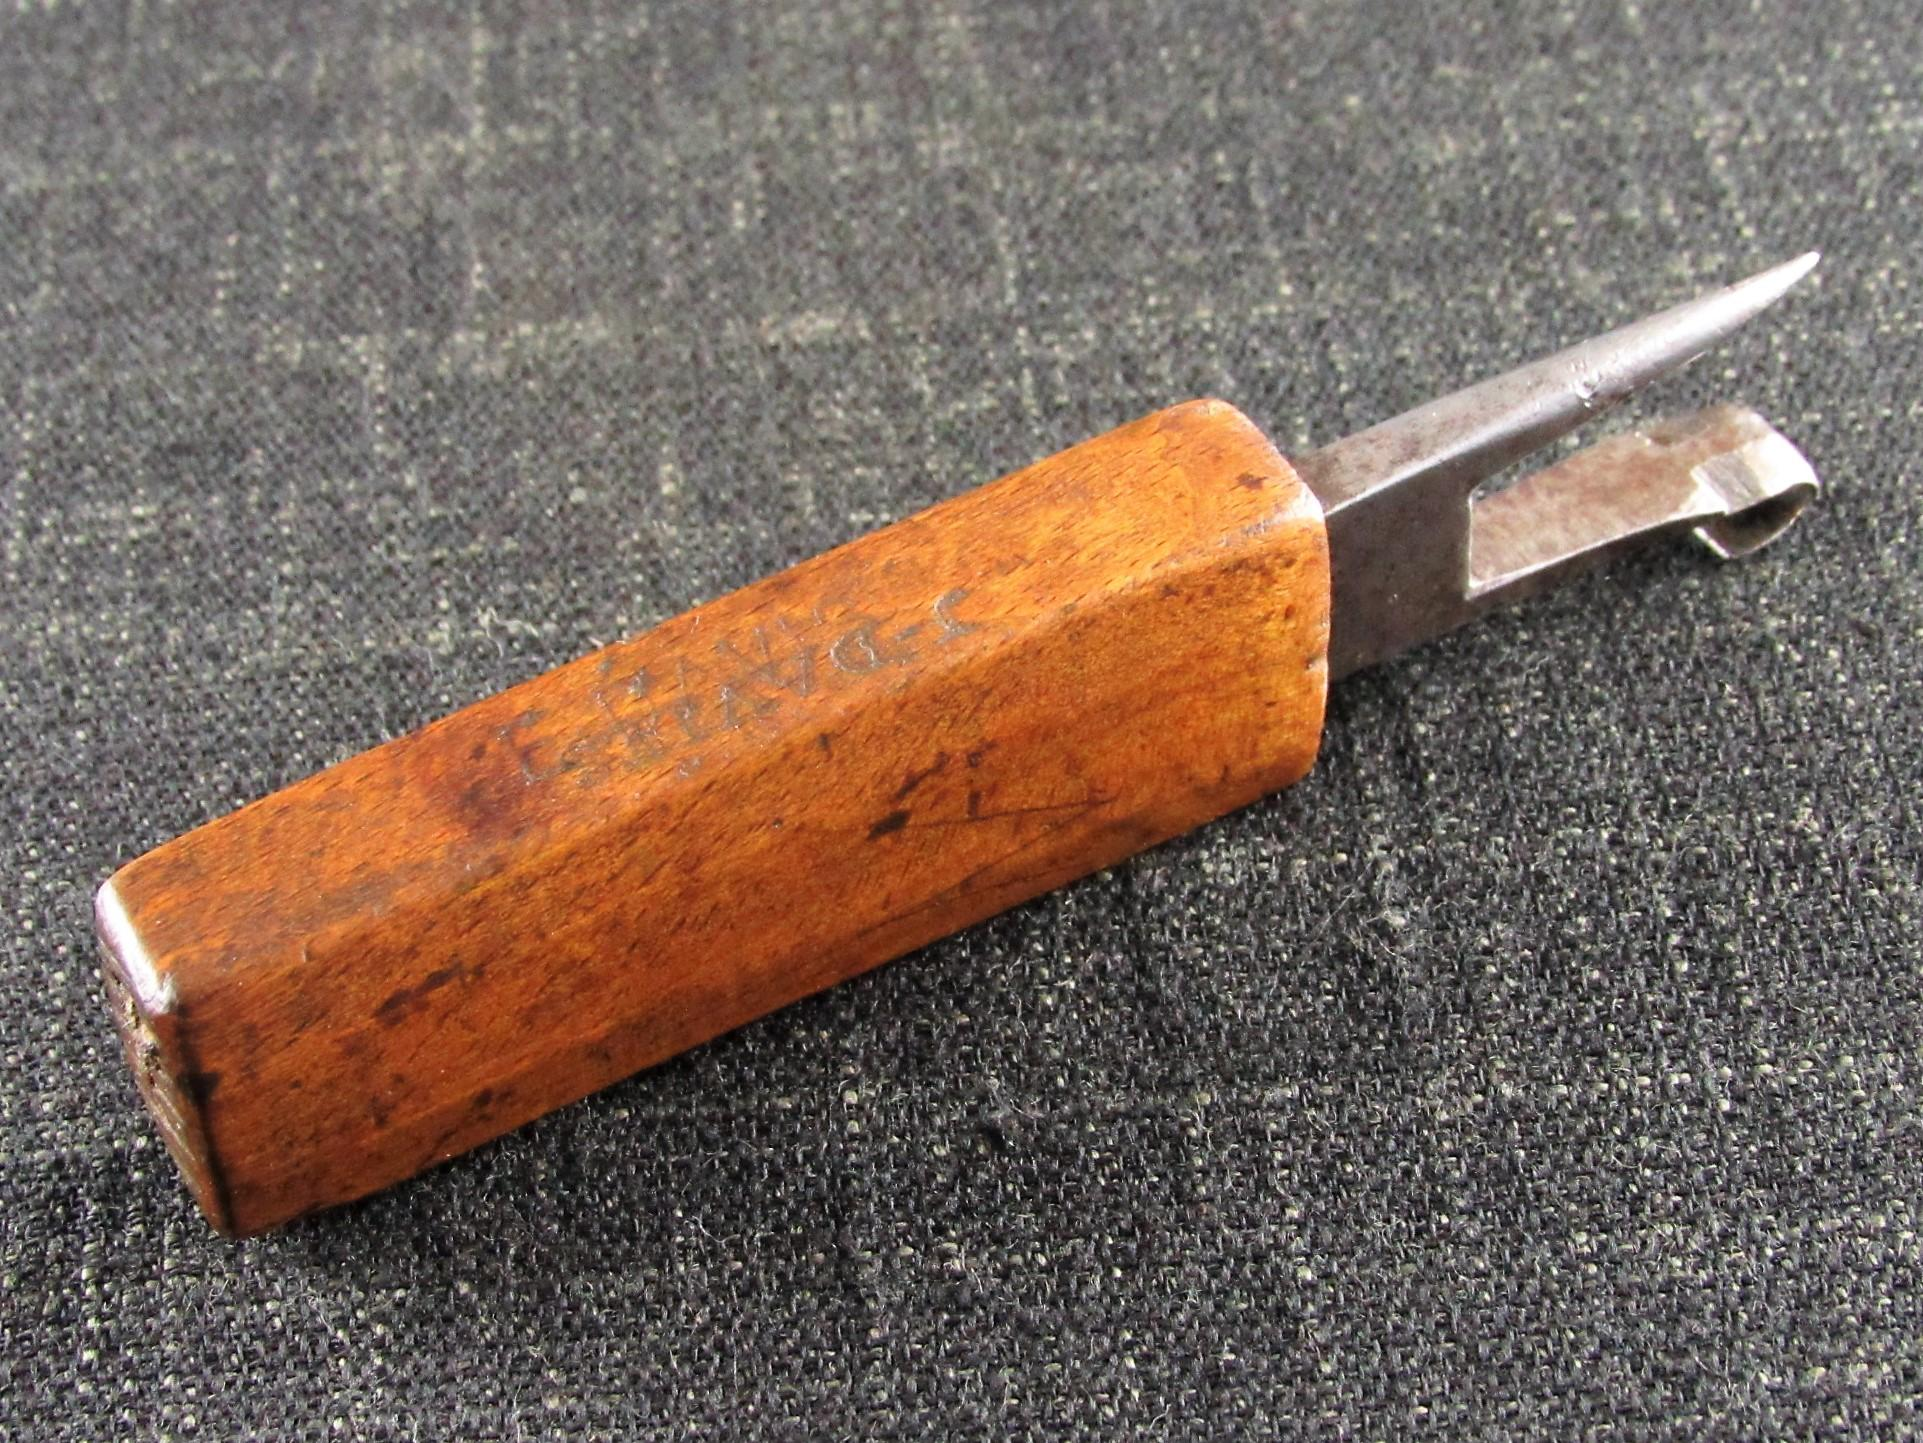 Wooden Handled Timber Scribe or Race Knife